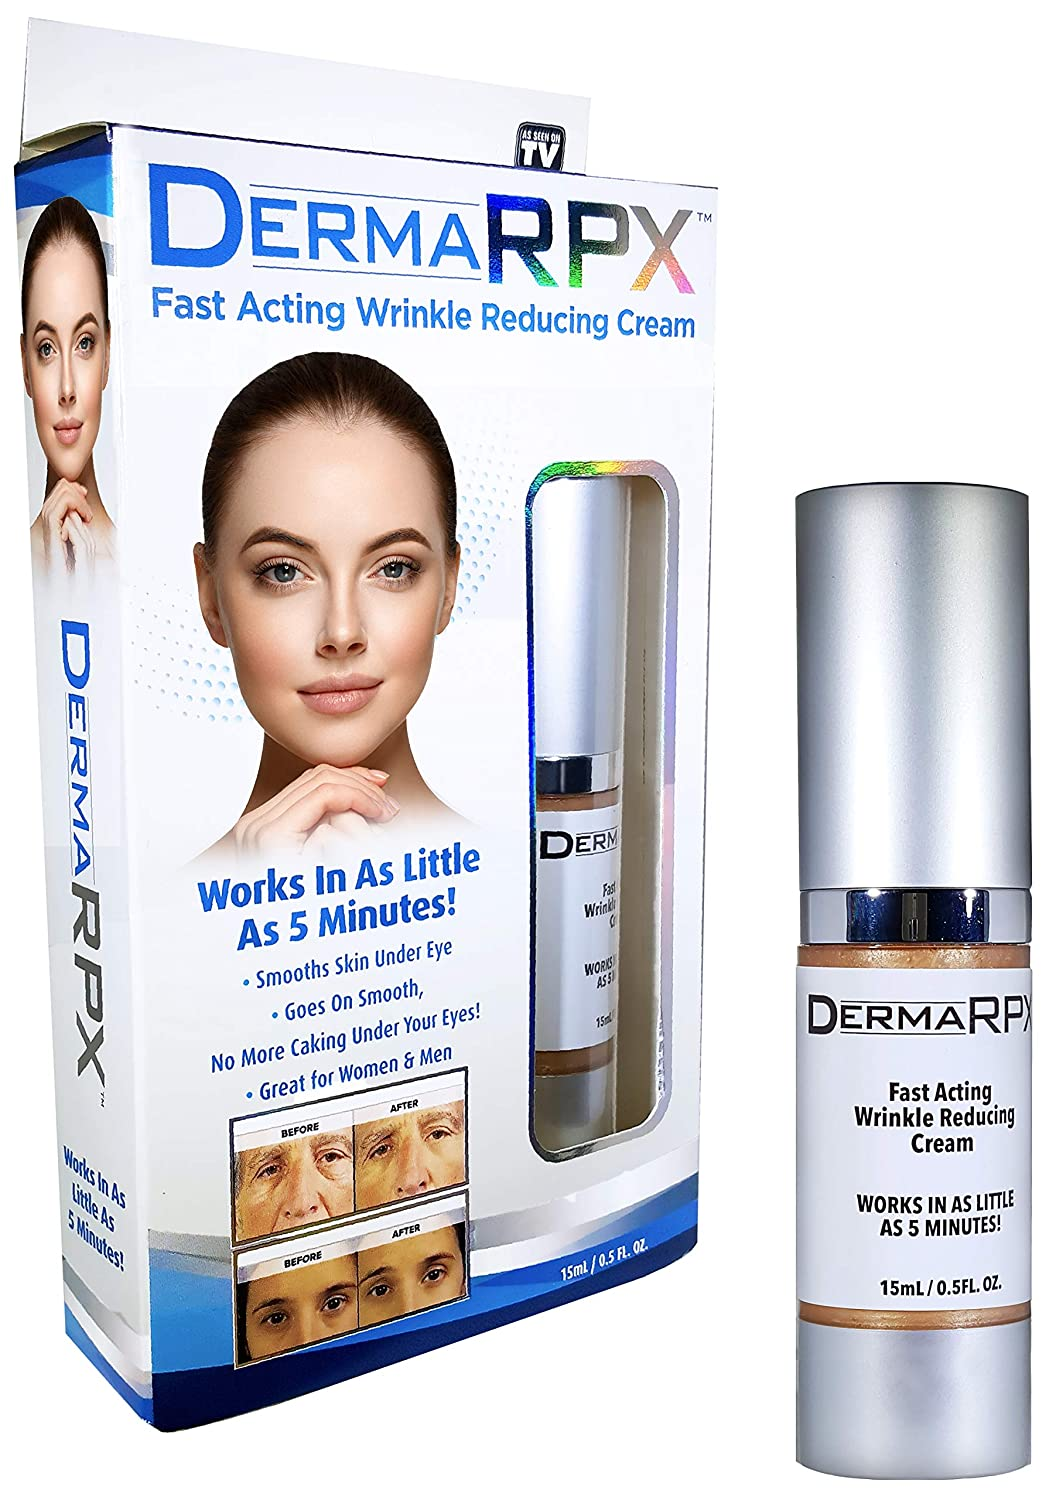 DERMA RPX with Hyaluronic Acid, 5-Minute Wrinkle and Fine Lines remover, Eye Bags Reducer Anti-aging Cream As Seen On TV